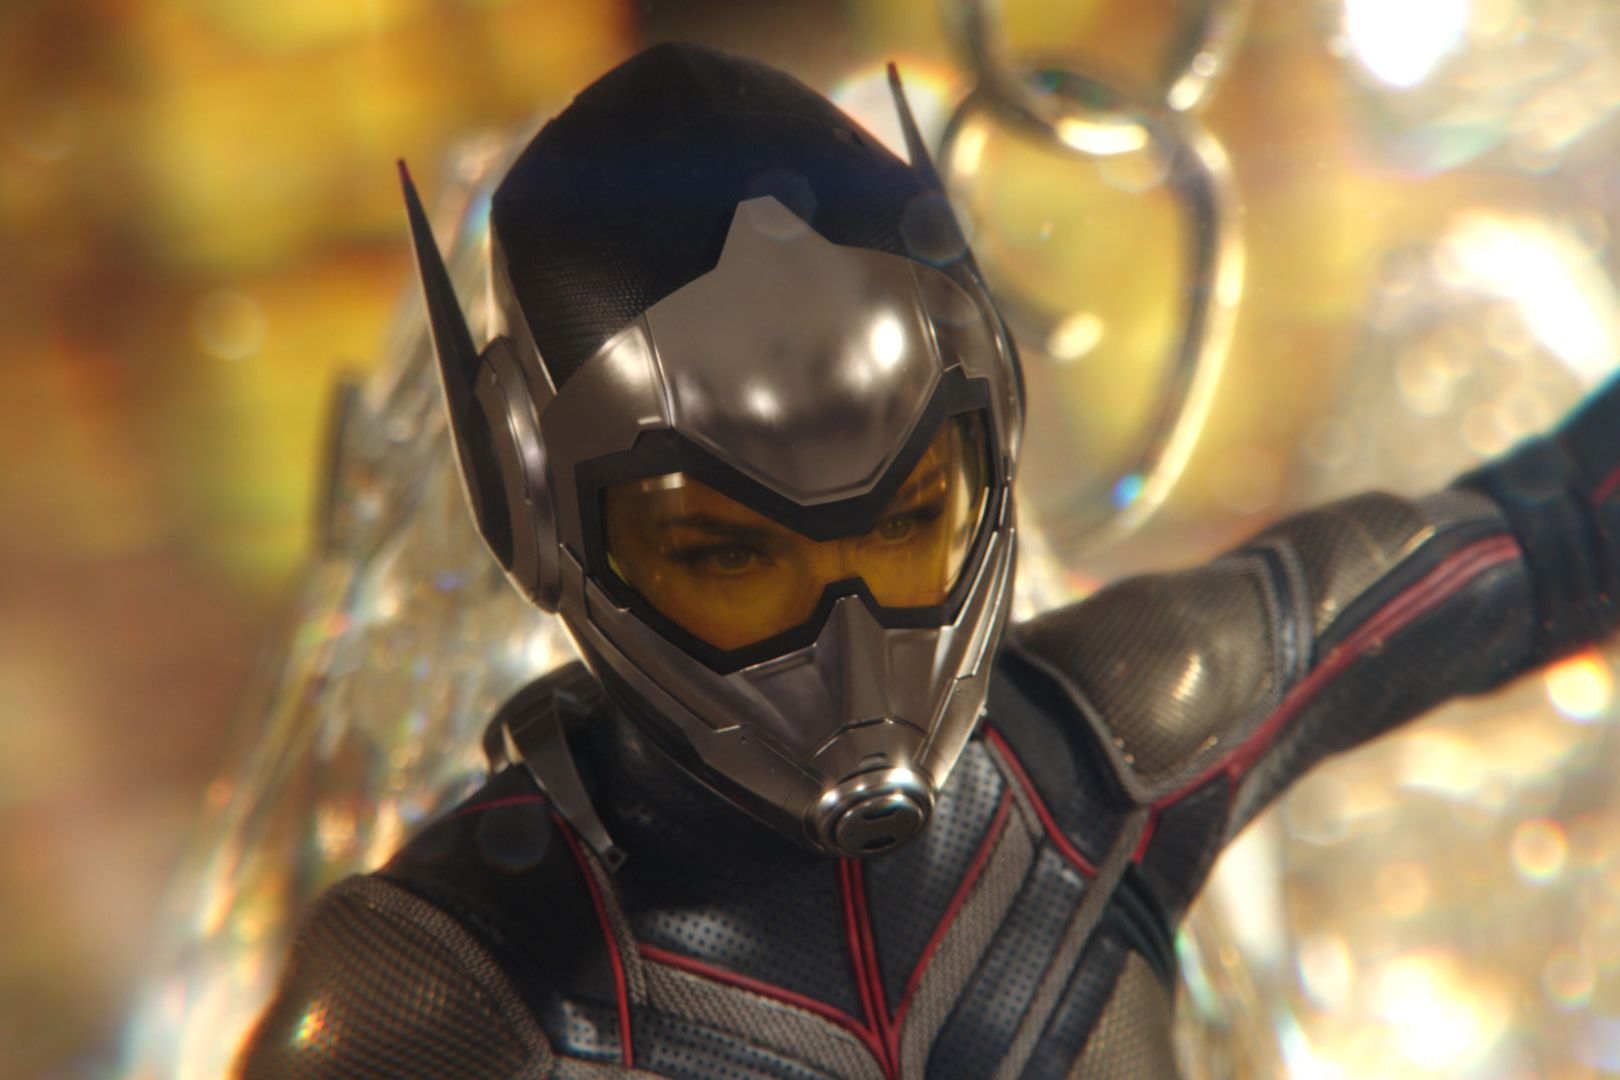 Wasp, Evangeline Lilly, Ant-man and The Wasp